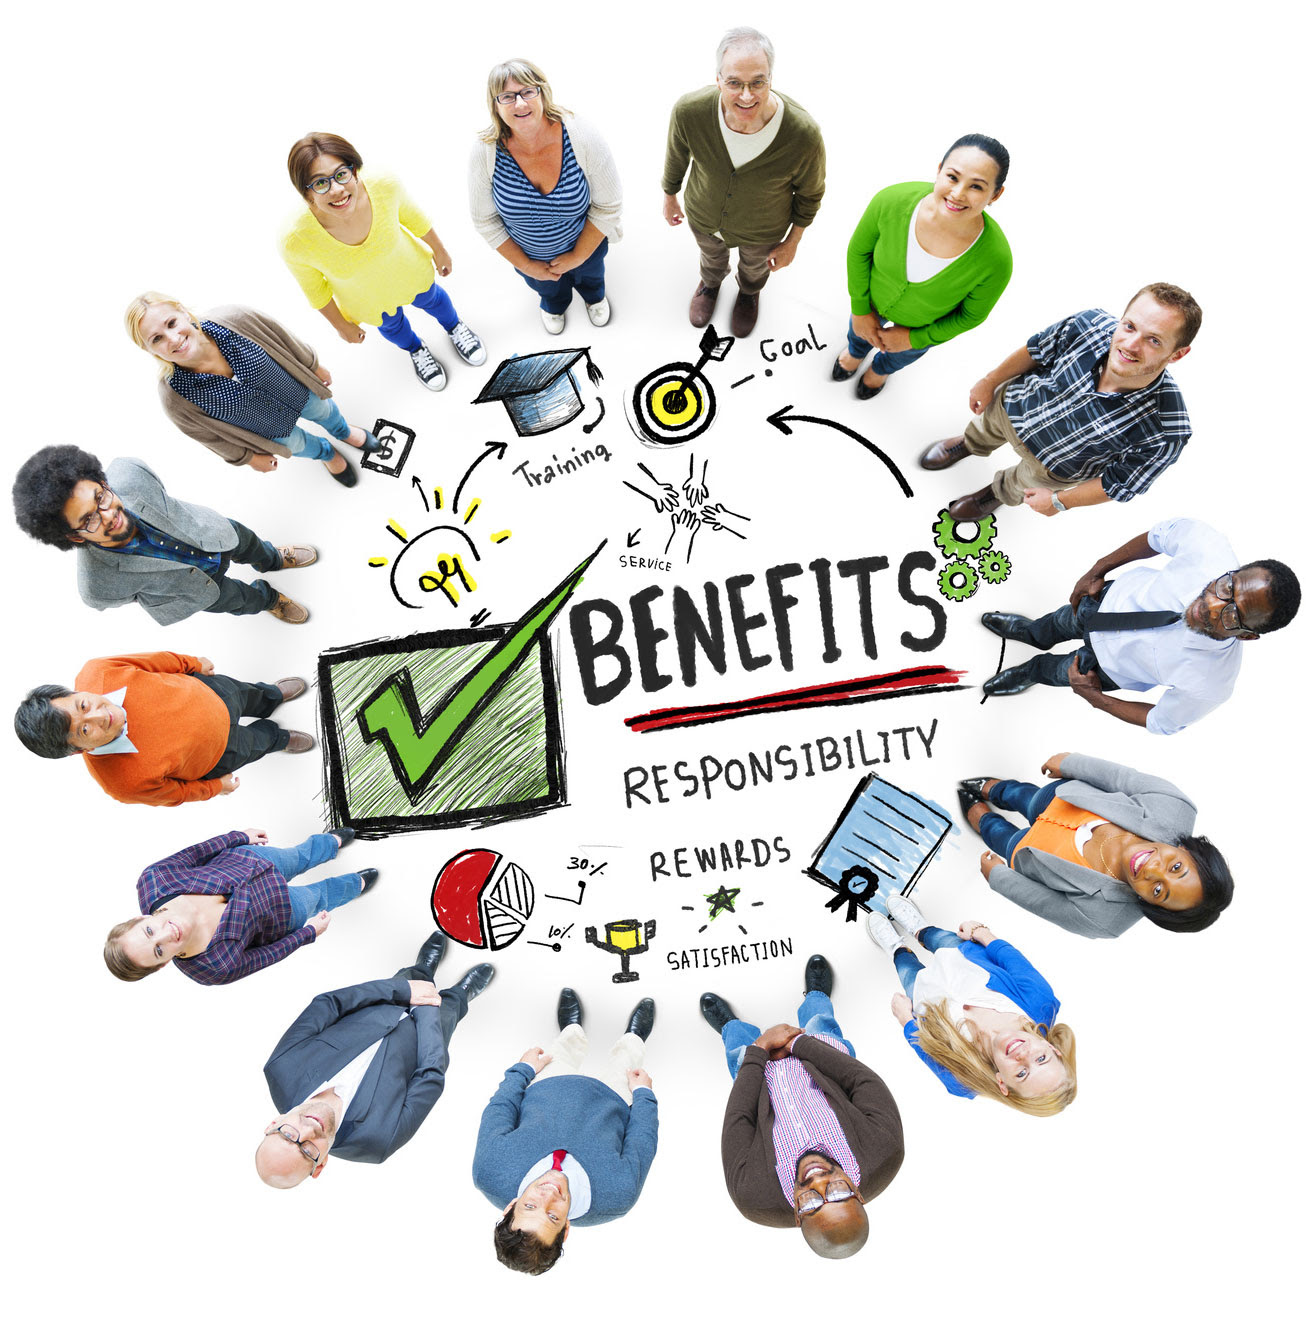 GROUP (Employee) BENEFITS | Fiducia Wealth Management